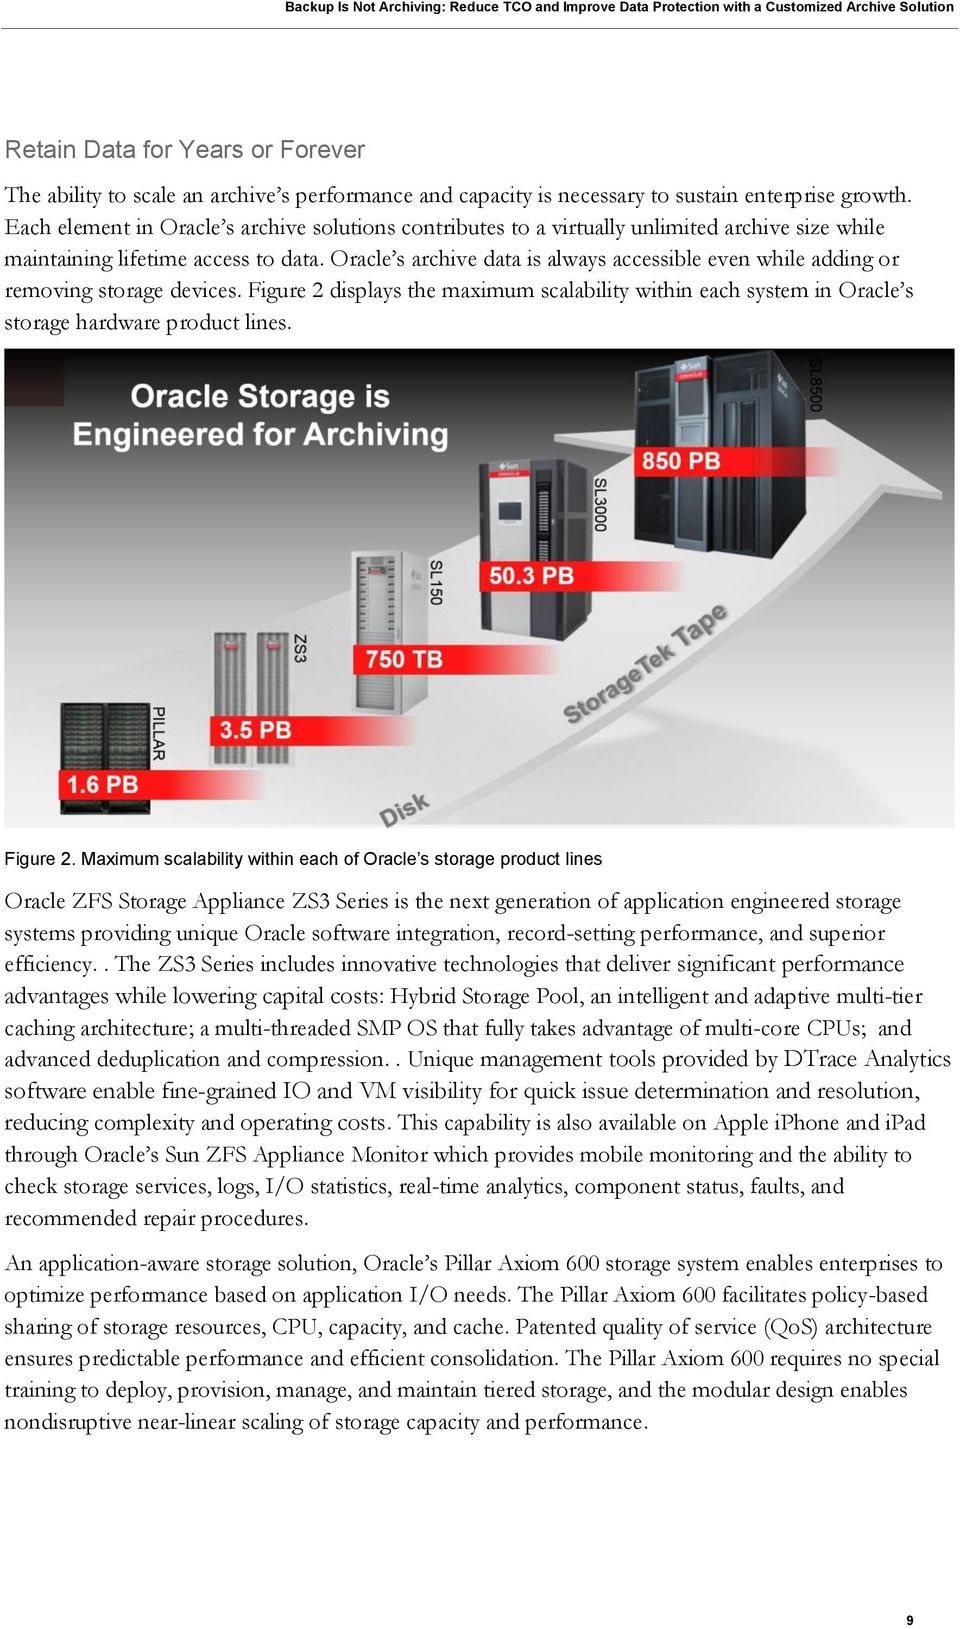 Oracle s archive data is always accessible even while adding or removing storage devices. Figure 2 displays the maximum scalability within each system in Oracle s storage hardware product lines.